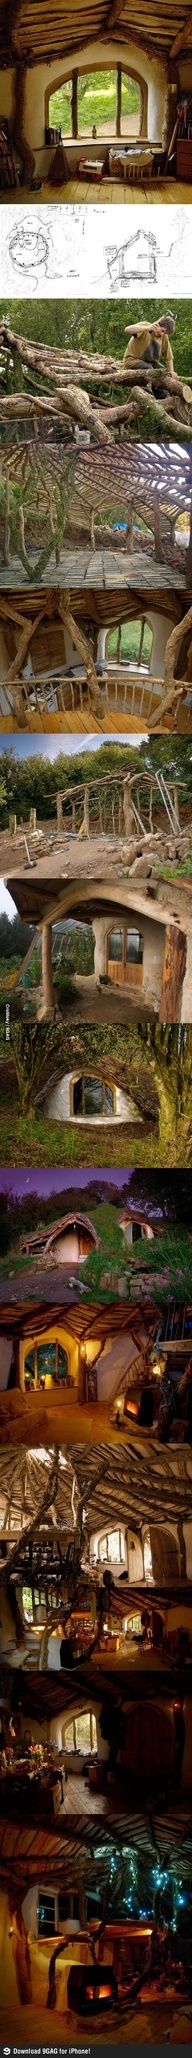 The ULTIMATE craft idea: Built your own hobbit hole!